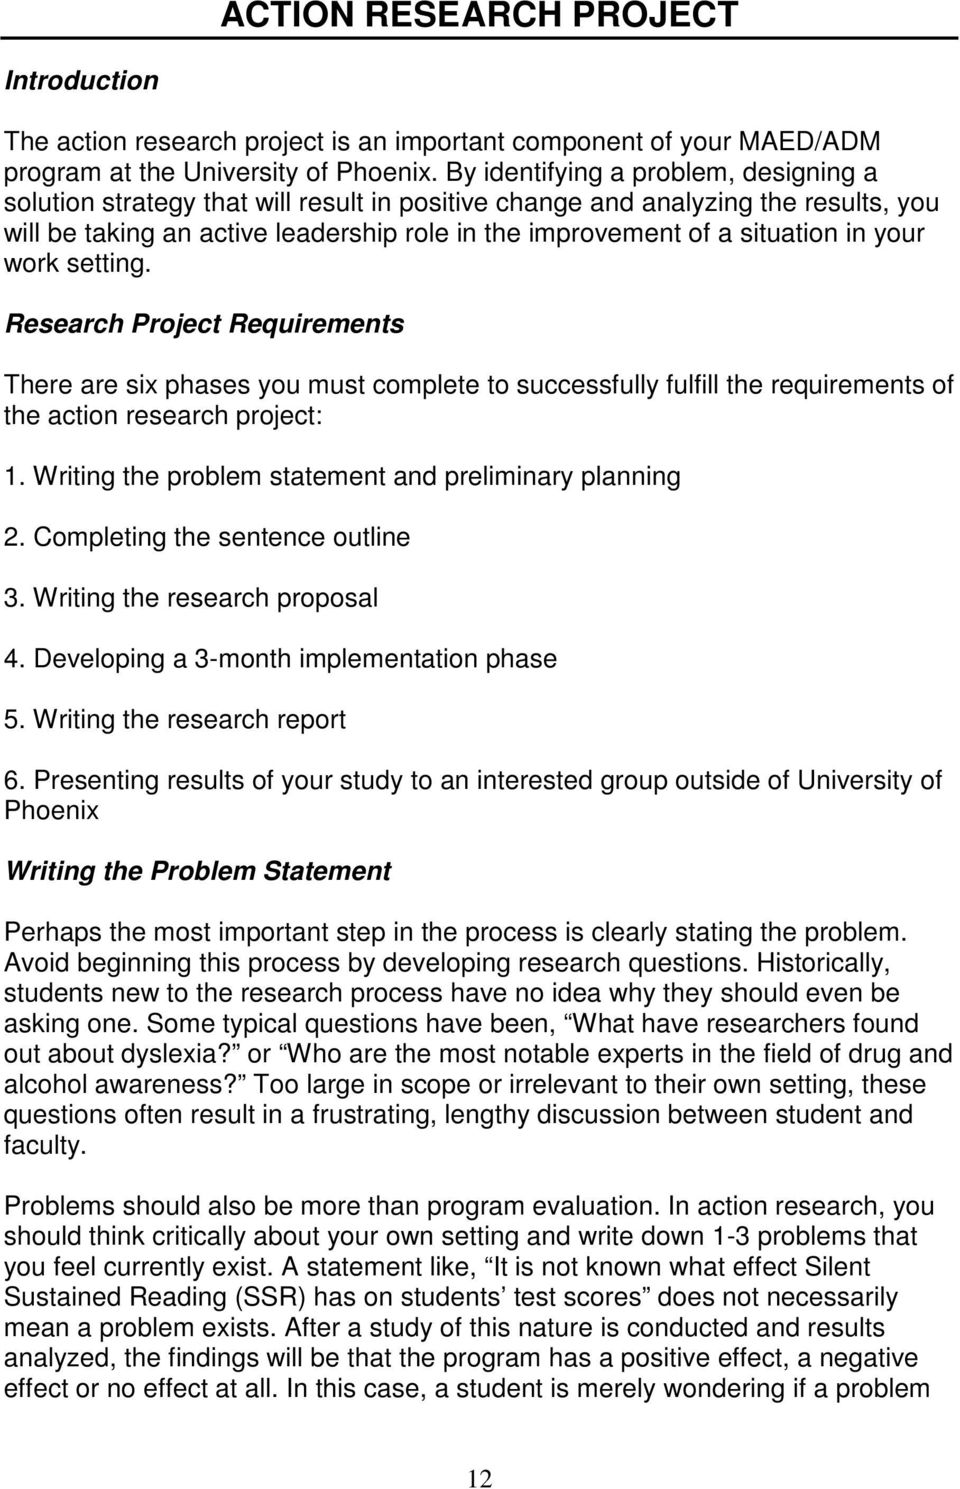 action research problem statement examples